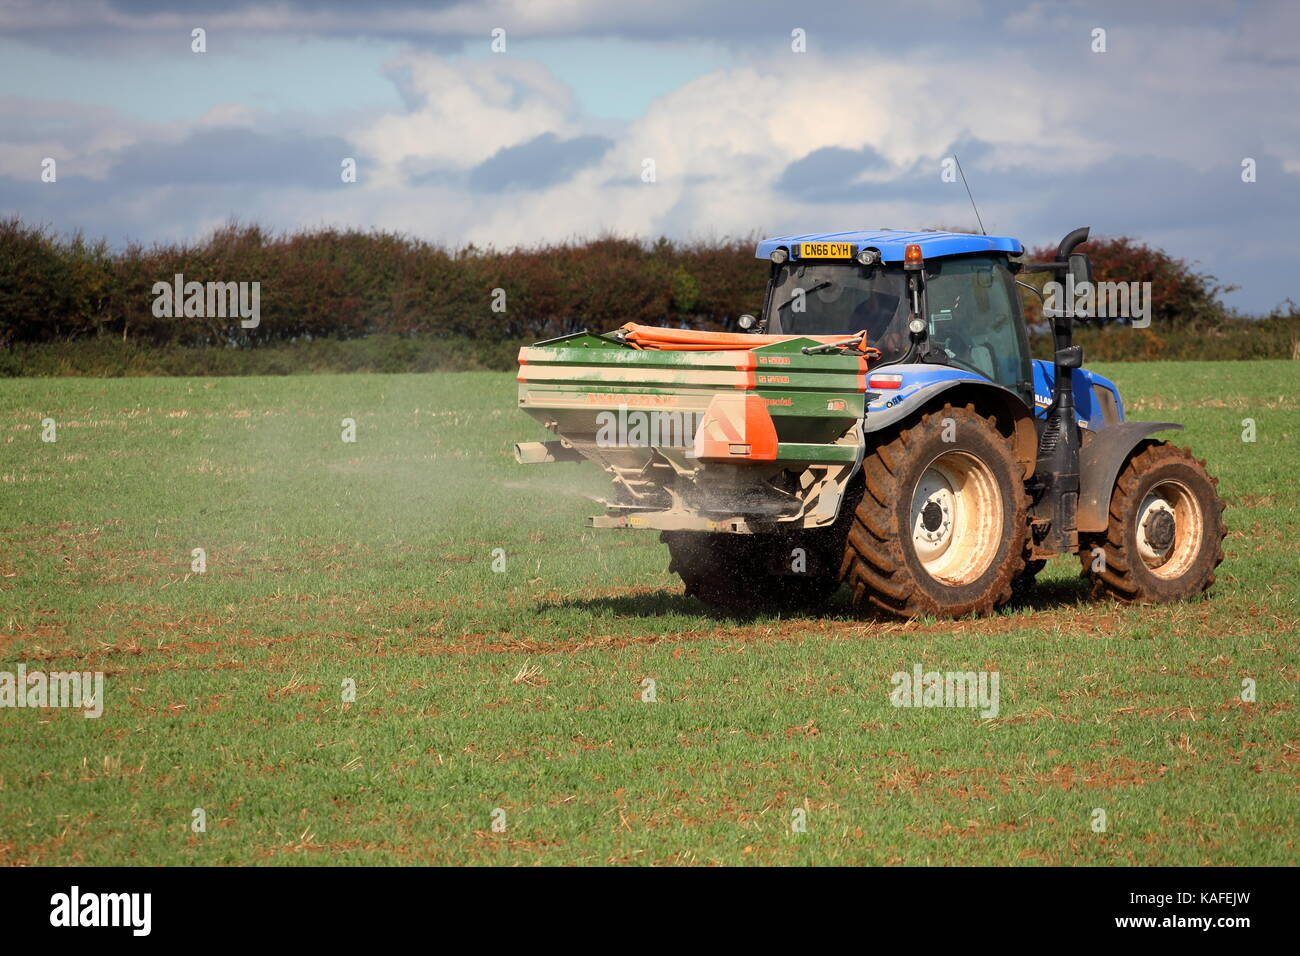 A farmer spreading fertiliser over a recently ploughed field with a tractor attached machine using spinning discs - Stock Image